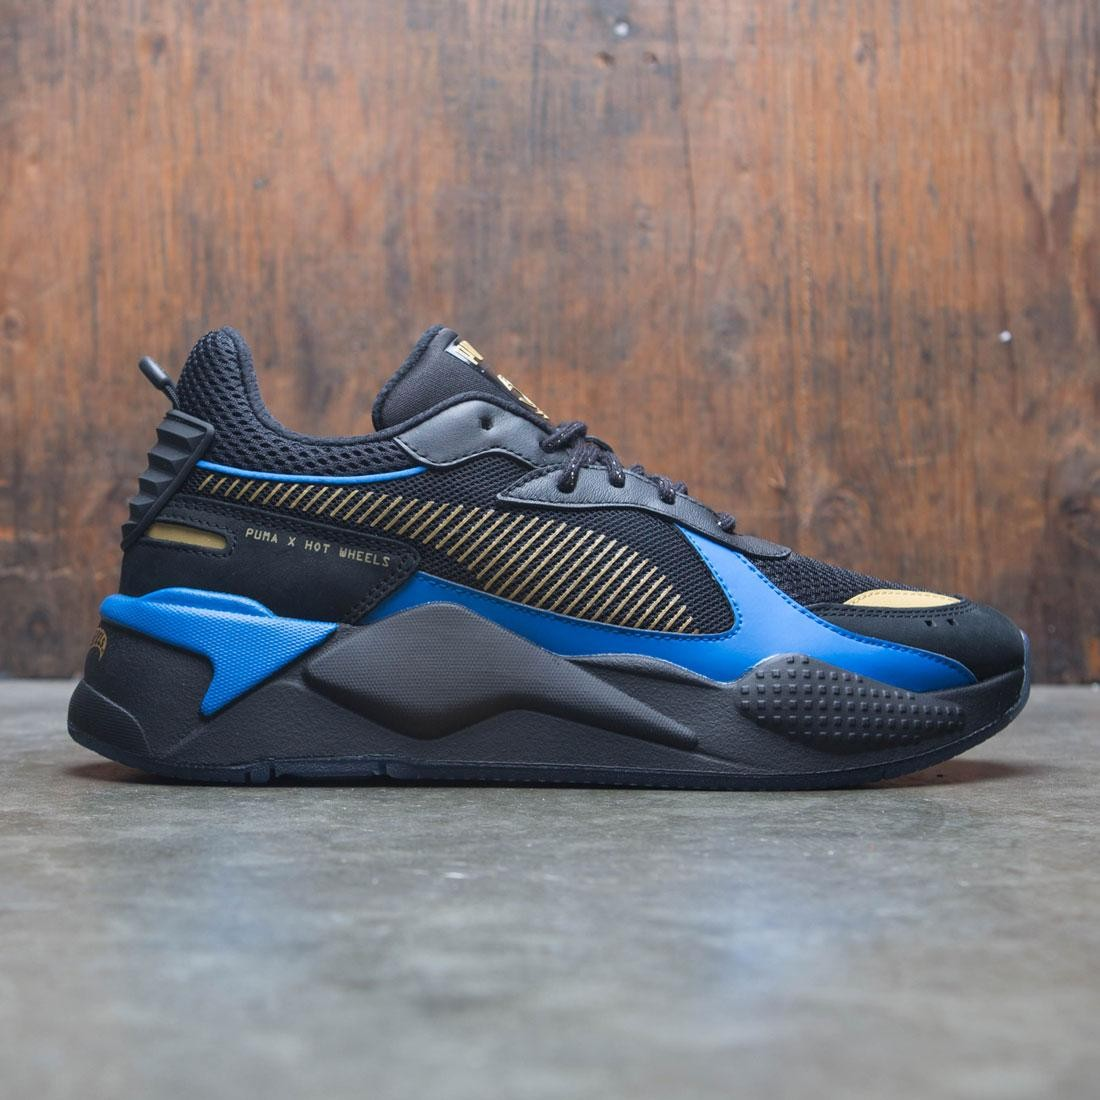 Puma x Hot Wheels Men RS-X - Bone Shaker (black / gold)